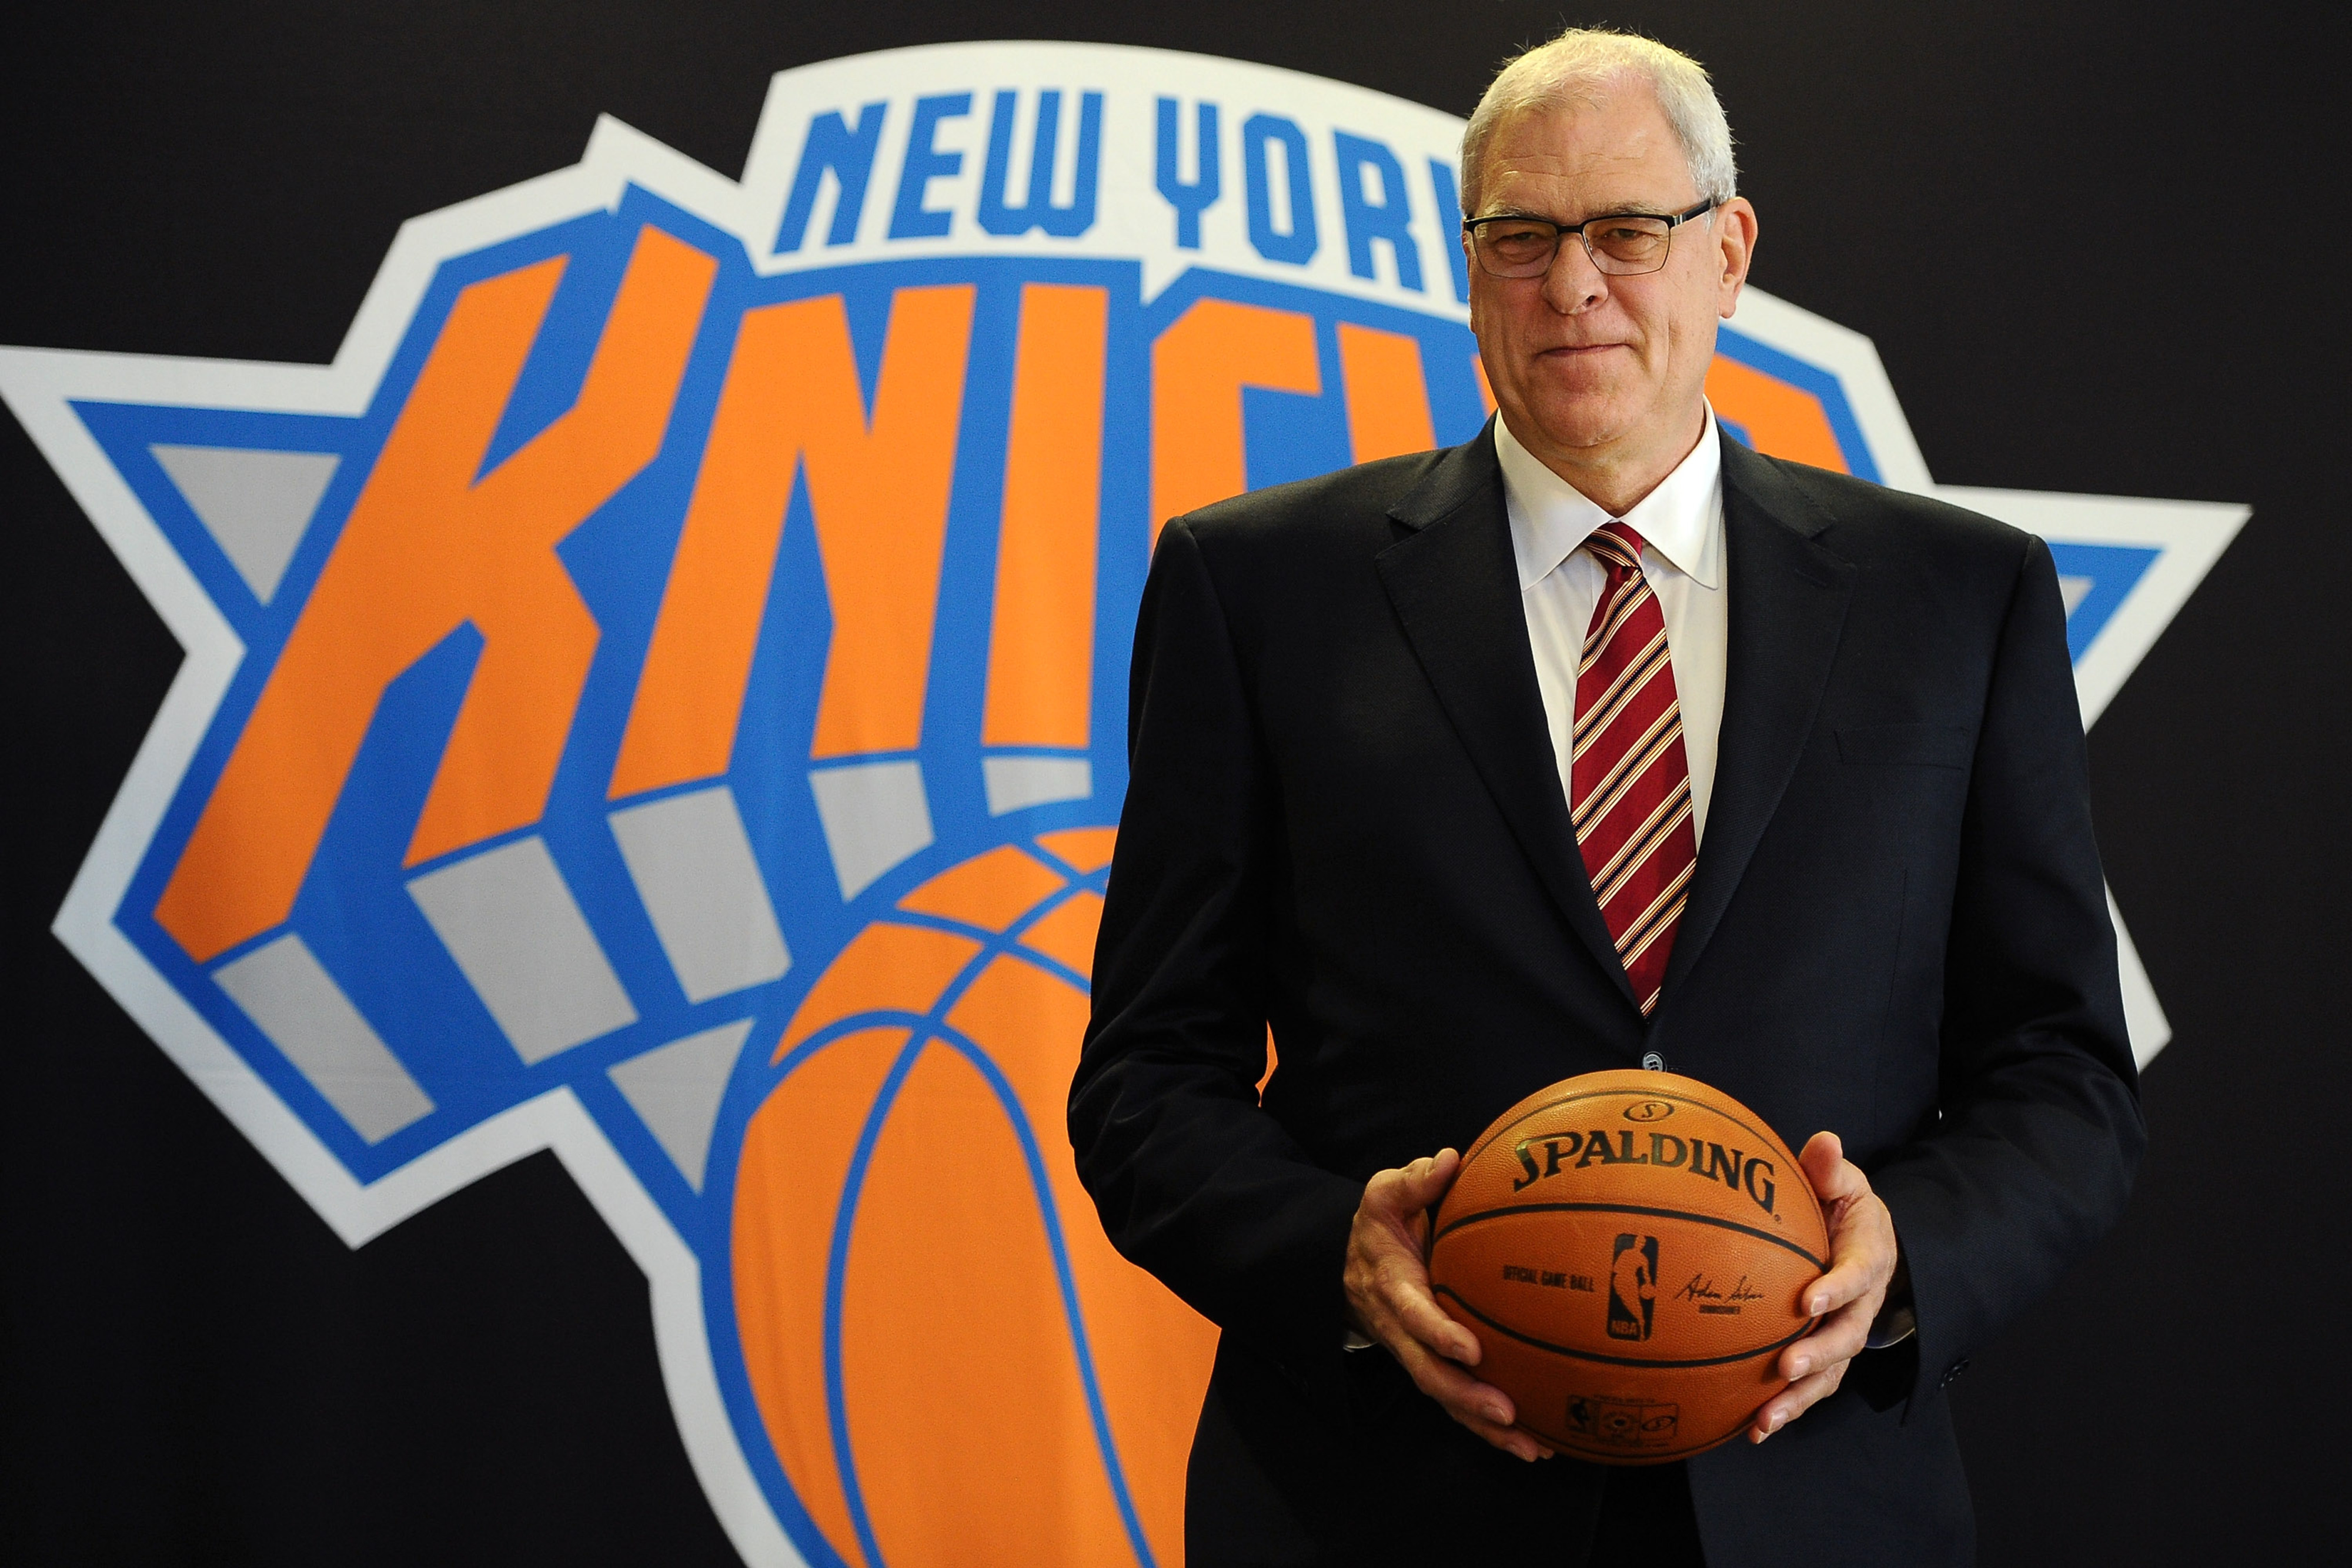 Phil Jackson says Knicks are committed to Carmelo Anthony during introductory press conference